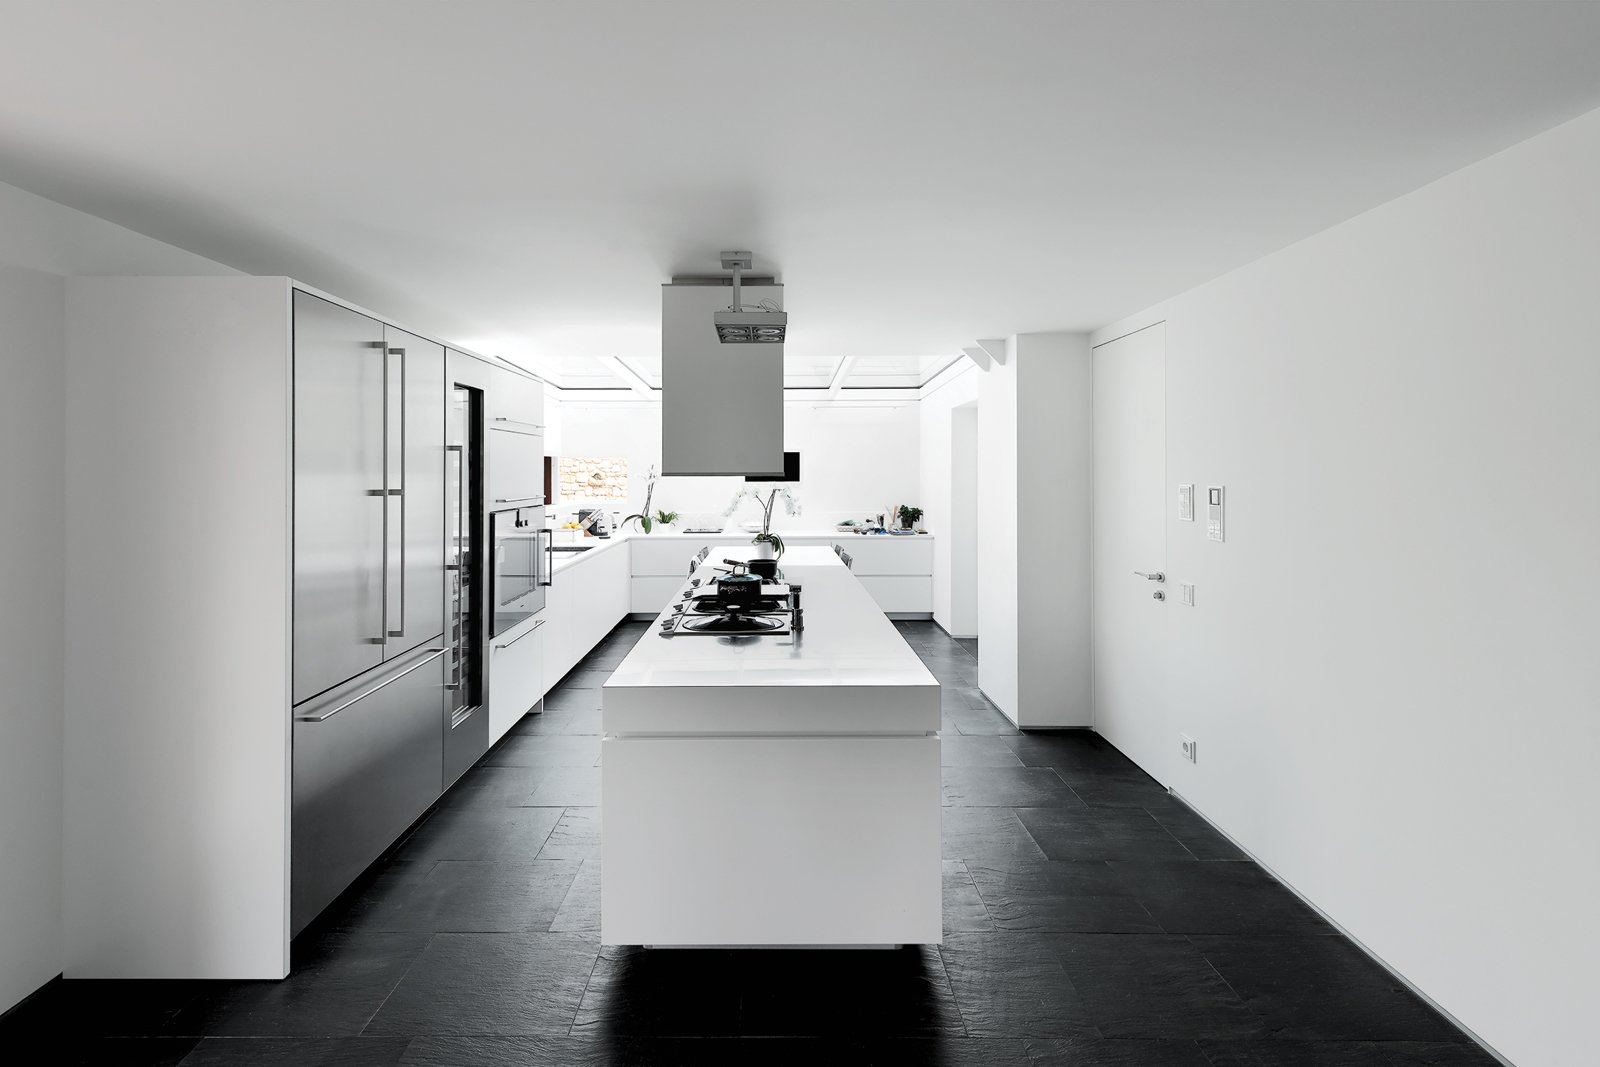 """""""We wanted a big kitchen to live in, not a small technical place to cook,"""" says Guido Chiavelli, who returns from work every day to have lunch with his wife and son. At the far end, a glass ceiling presents an open-air feeling. """"Cooking while it's raining is fascinating,"""" he says. Tagged: Kitchen, Dark Hardwood Floor, Refrigerator, and White Cabinet.  Cocina by Javier Rodríguez from A Renovated Farmhouse in Northern Italy"""